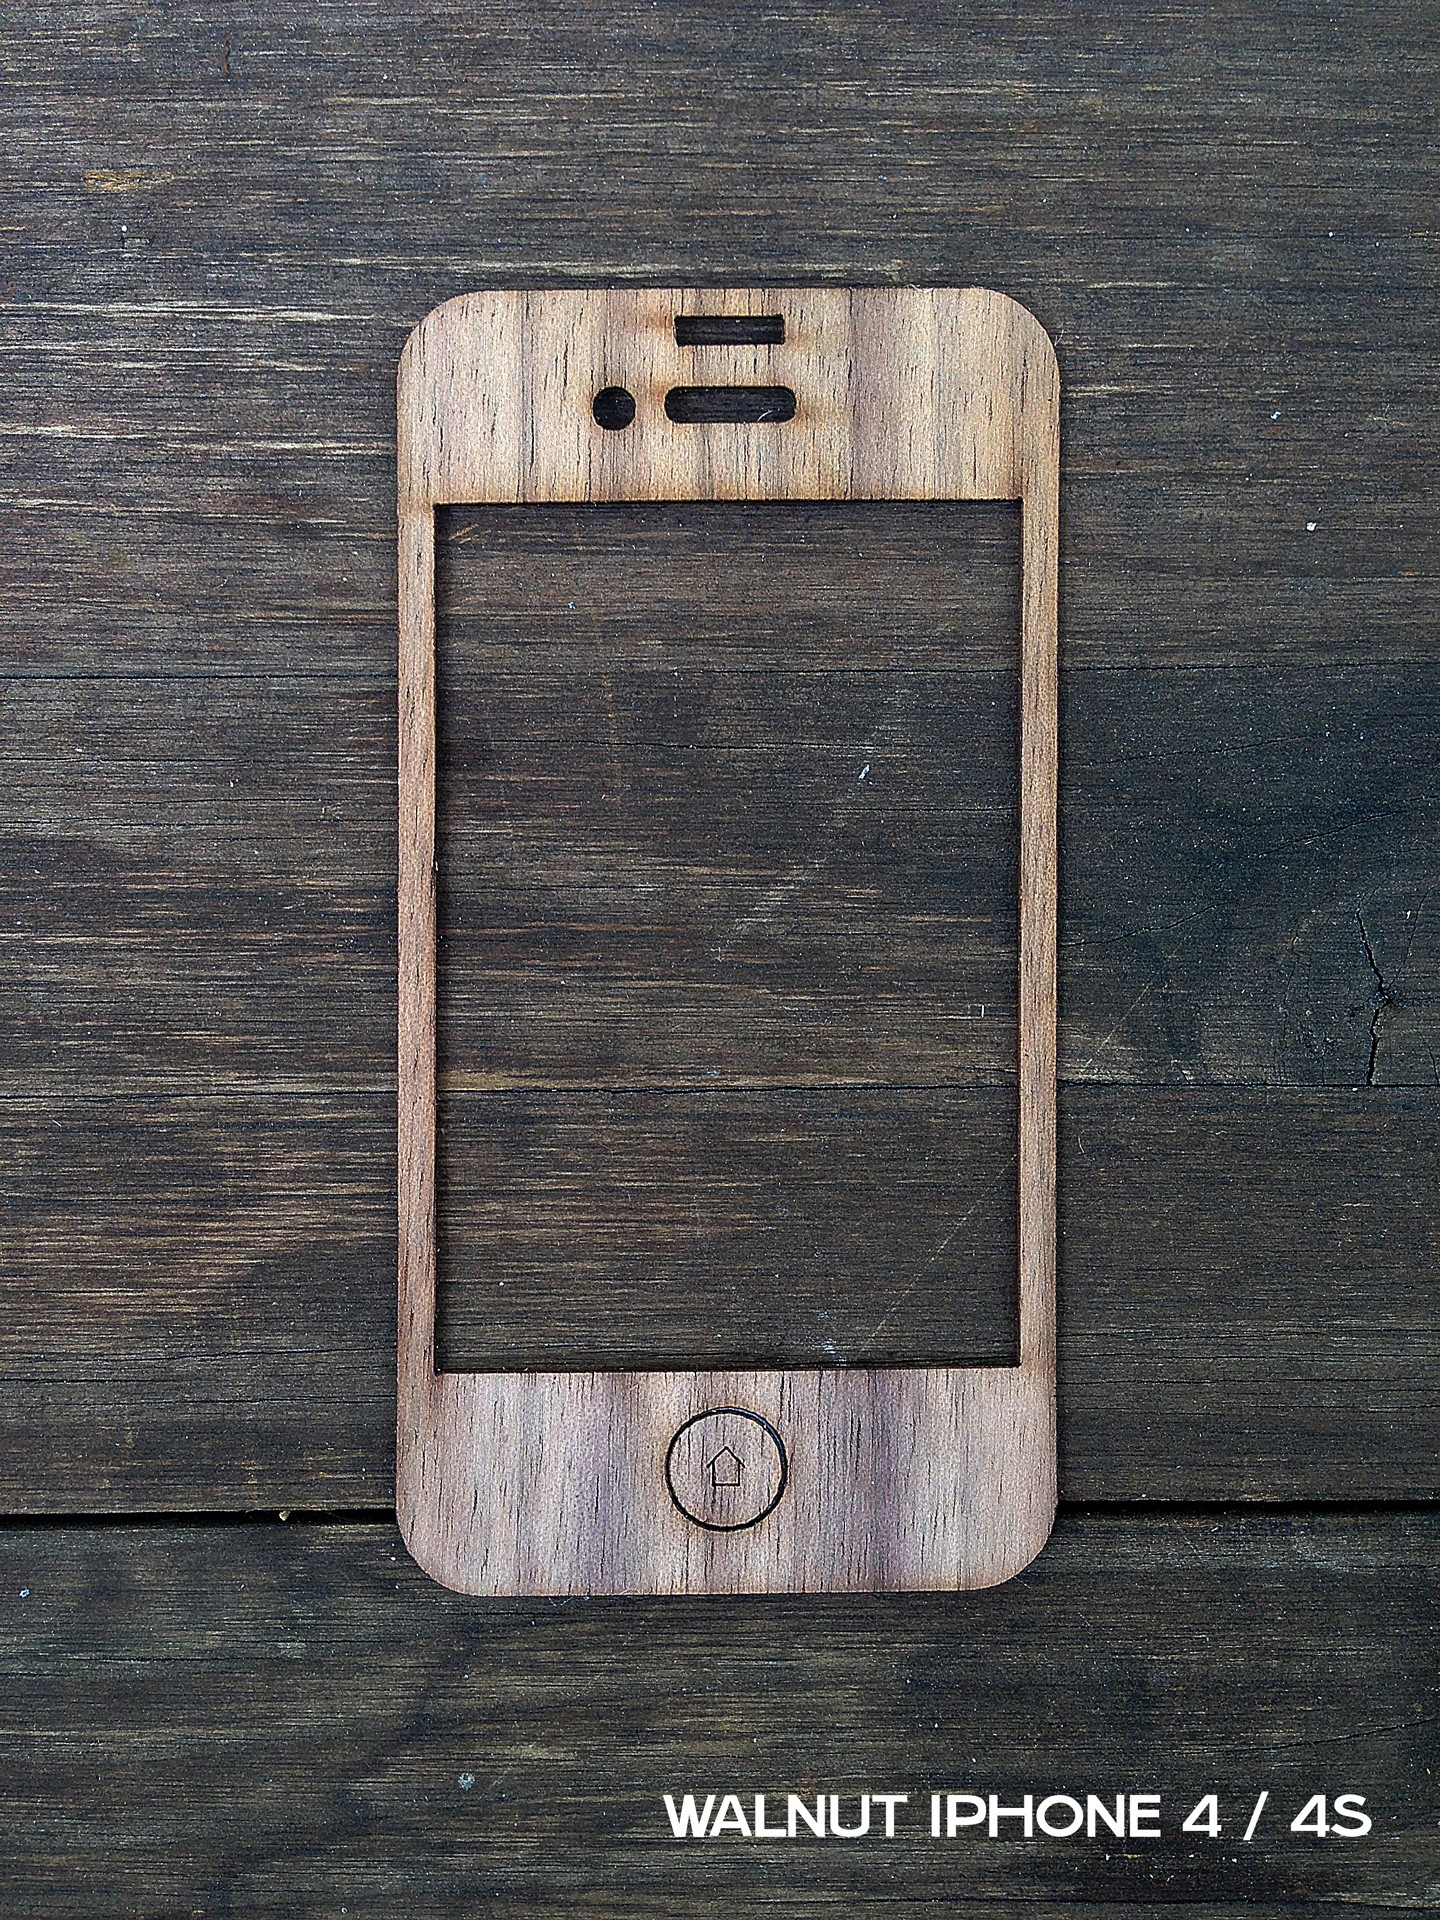 Walnut iPhone Case for iPhone 4 and iPhone 4S